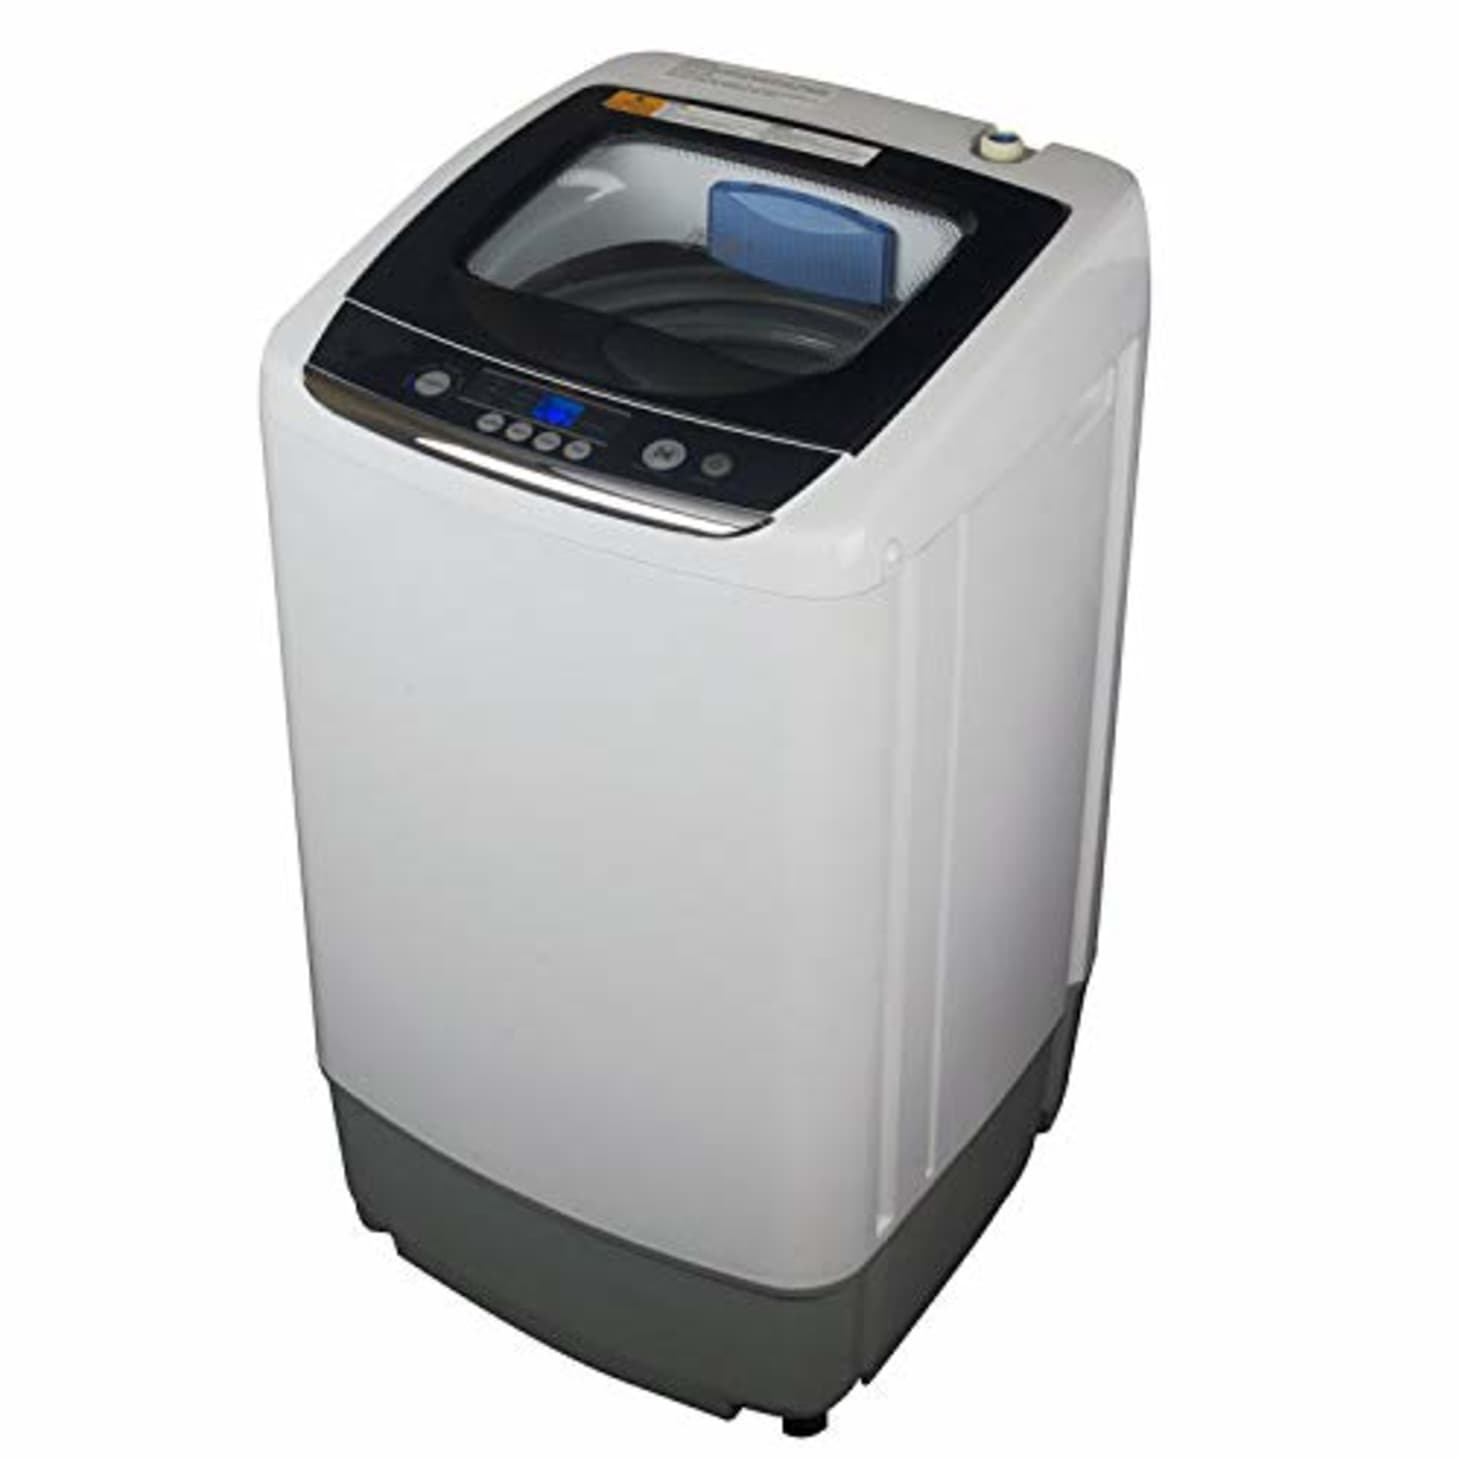 Portable Washing Machine for Apartments, Review | Apartment ...